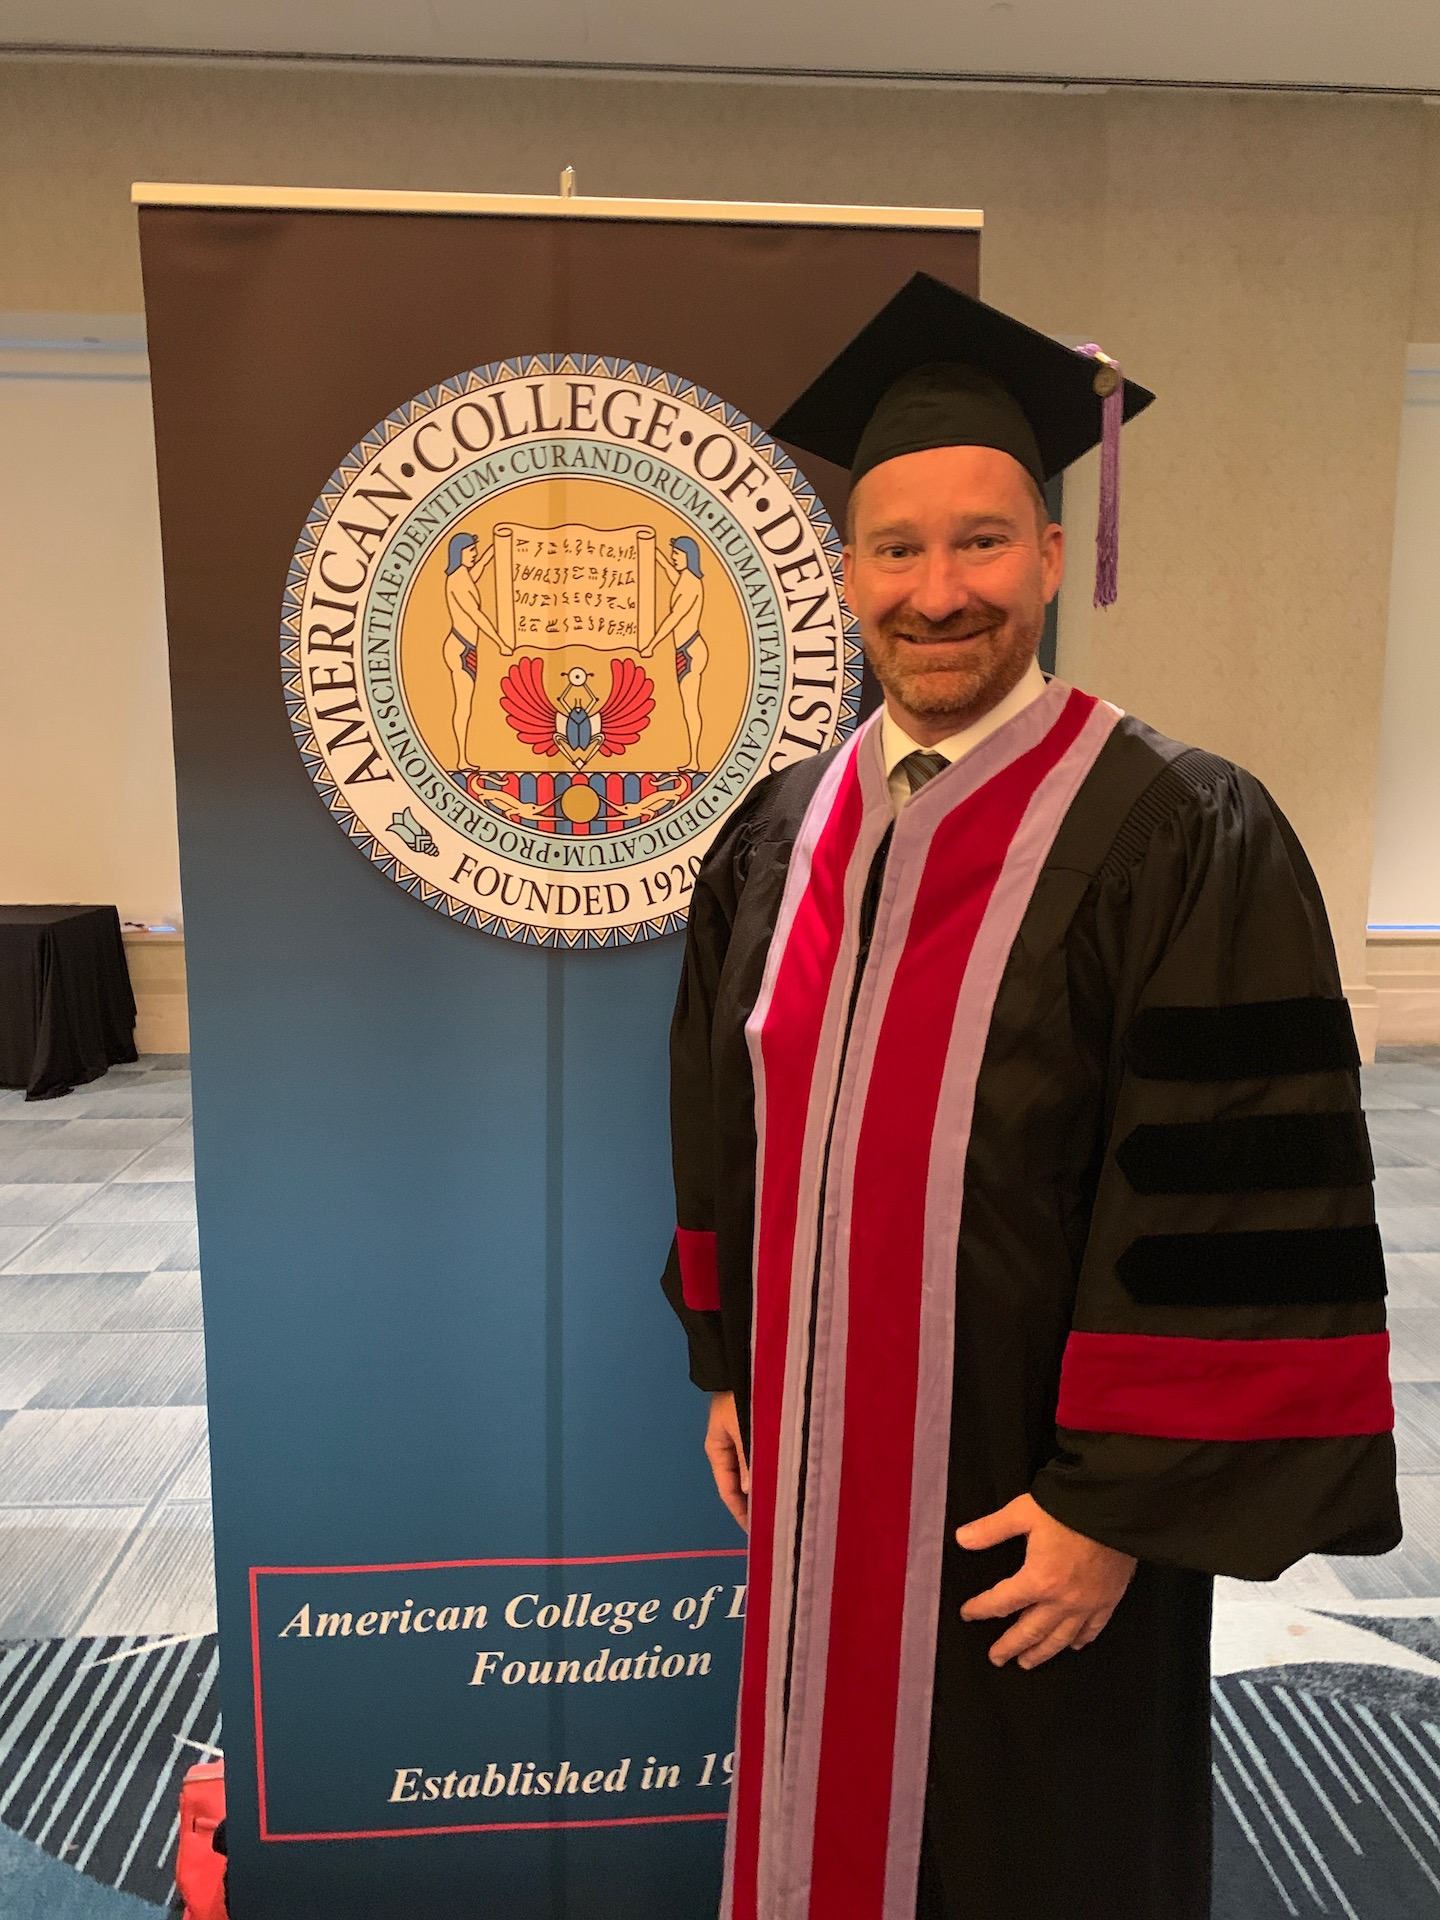 Dr. John - American College of Dentists!